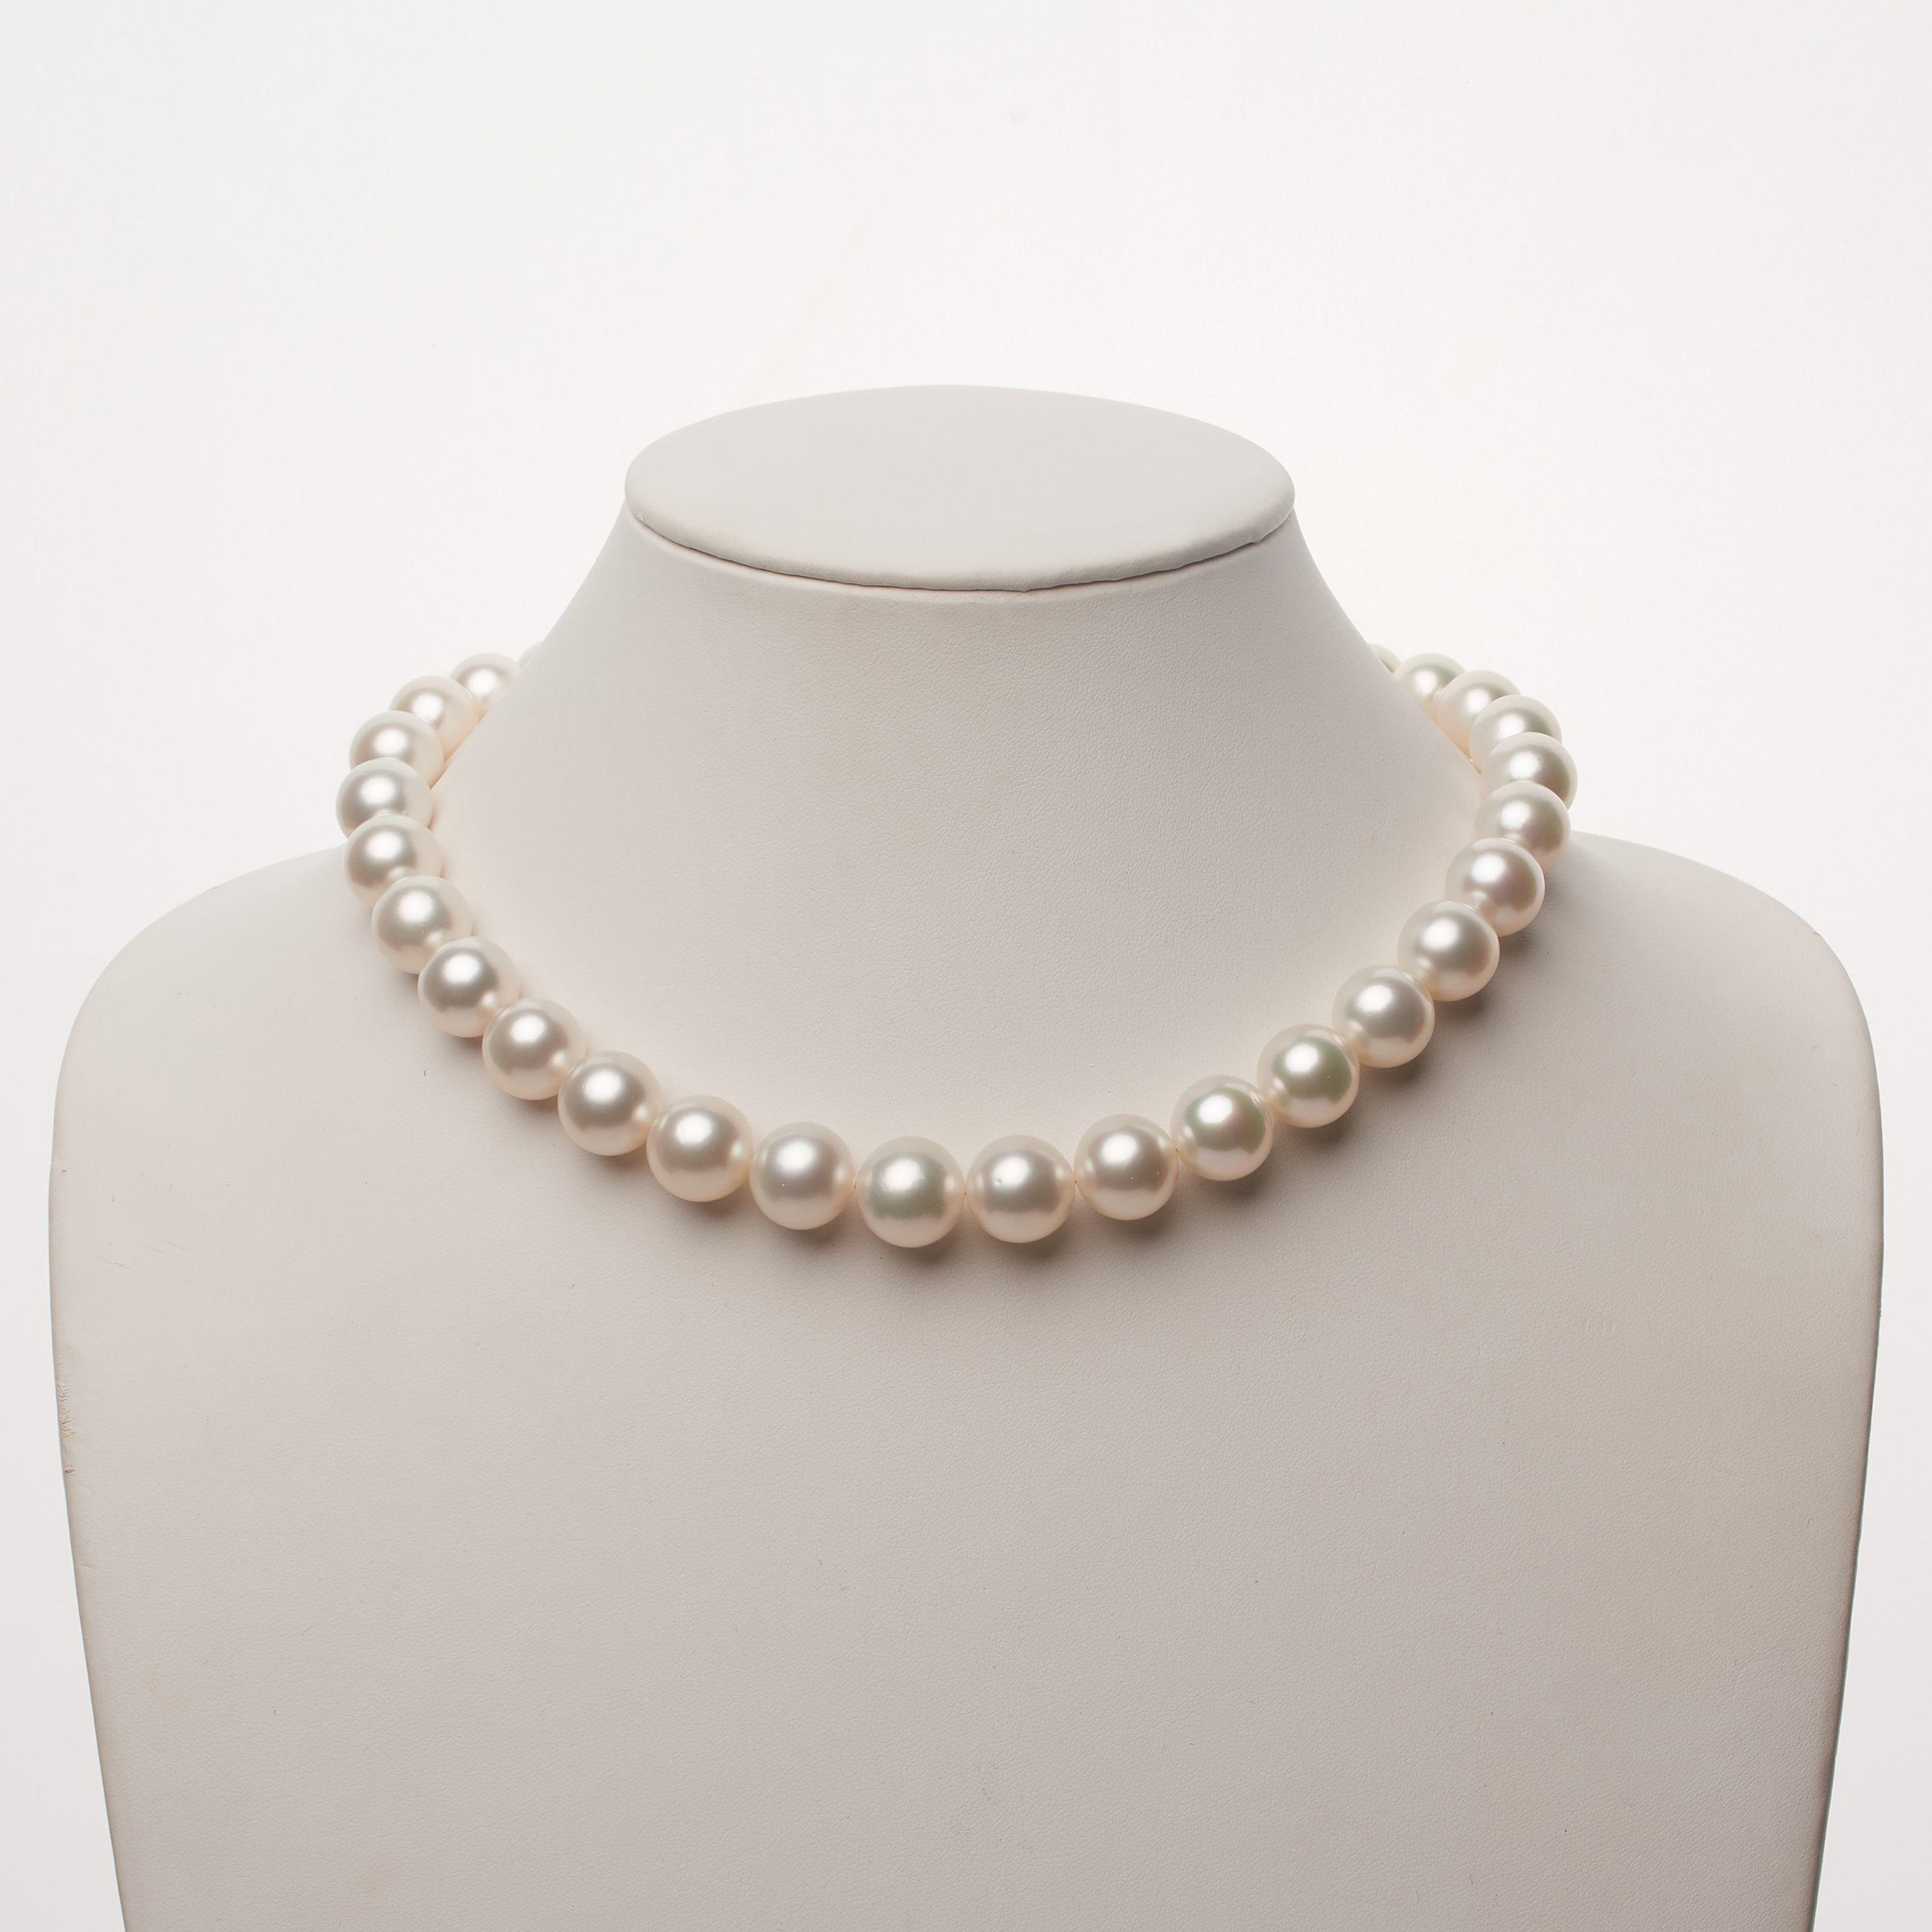 12.0-14.1 mm AA+ White South Sea Round Pearl Necklace